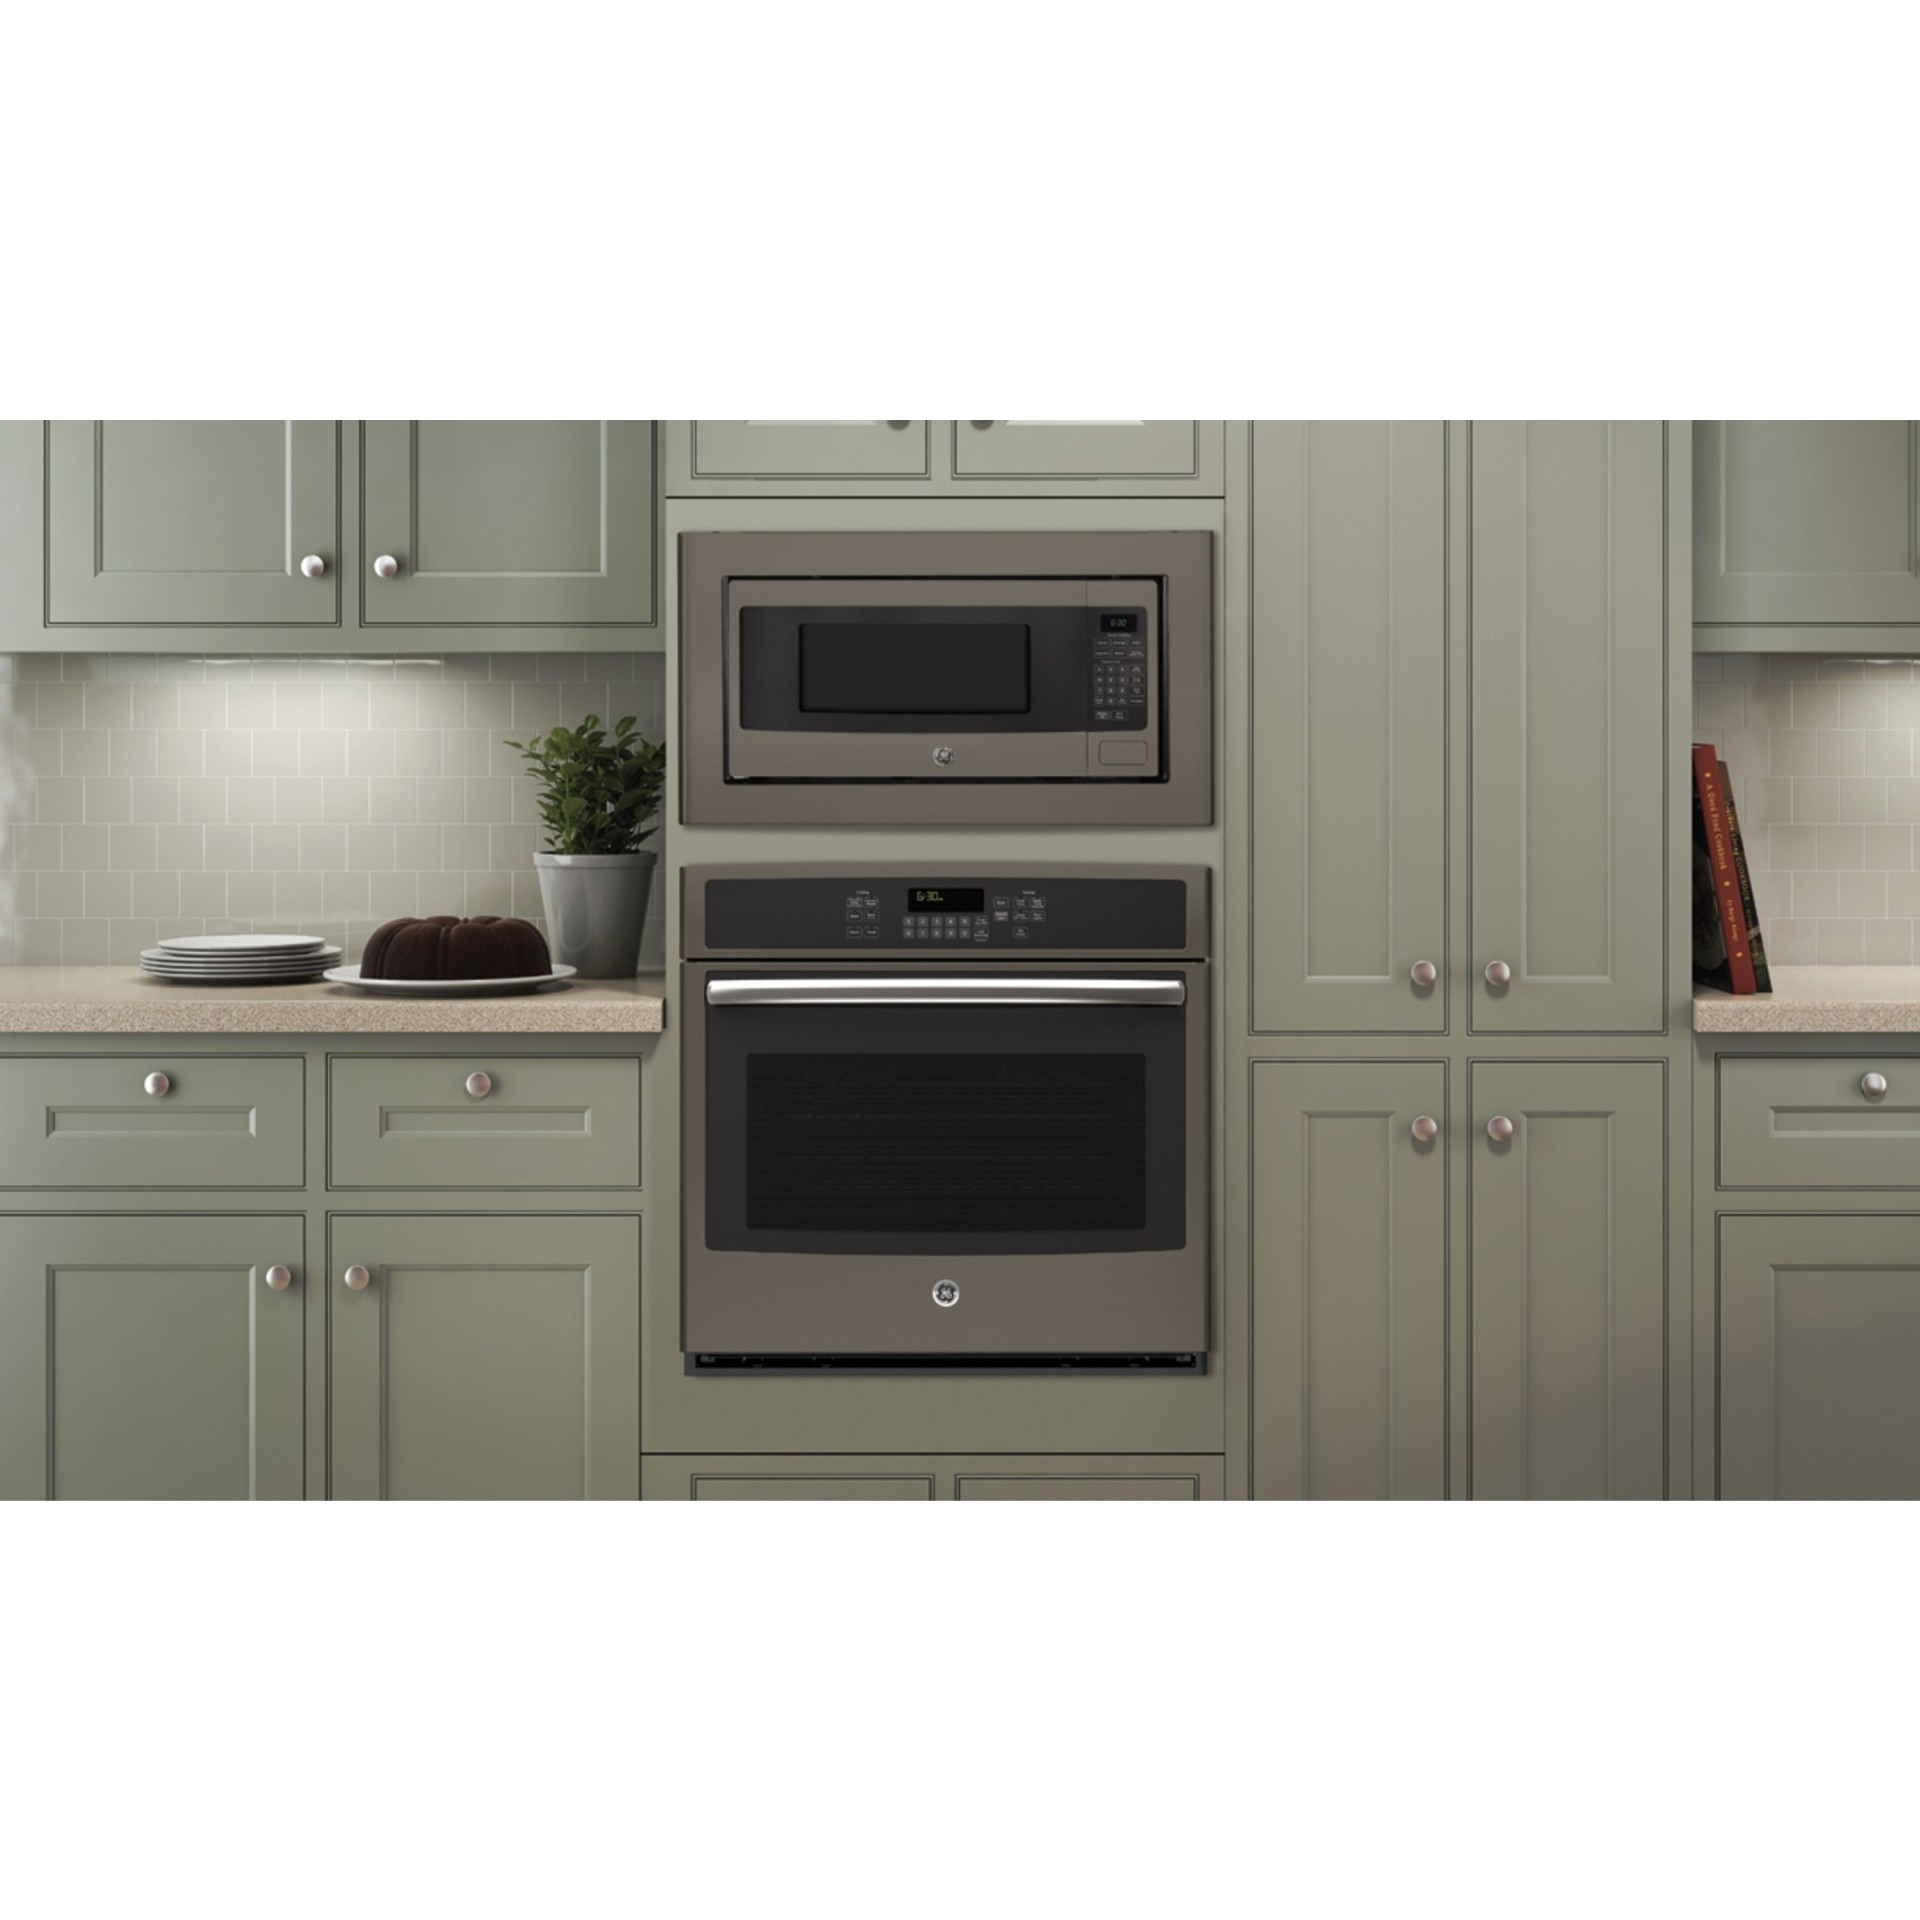 Pem31efes Ge Profile 1 1 Cu Ft Countertop Or Built In